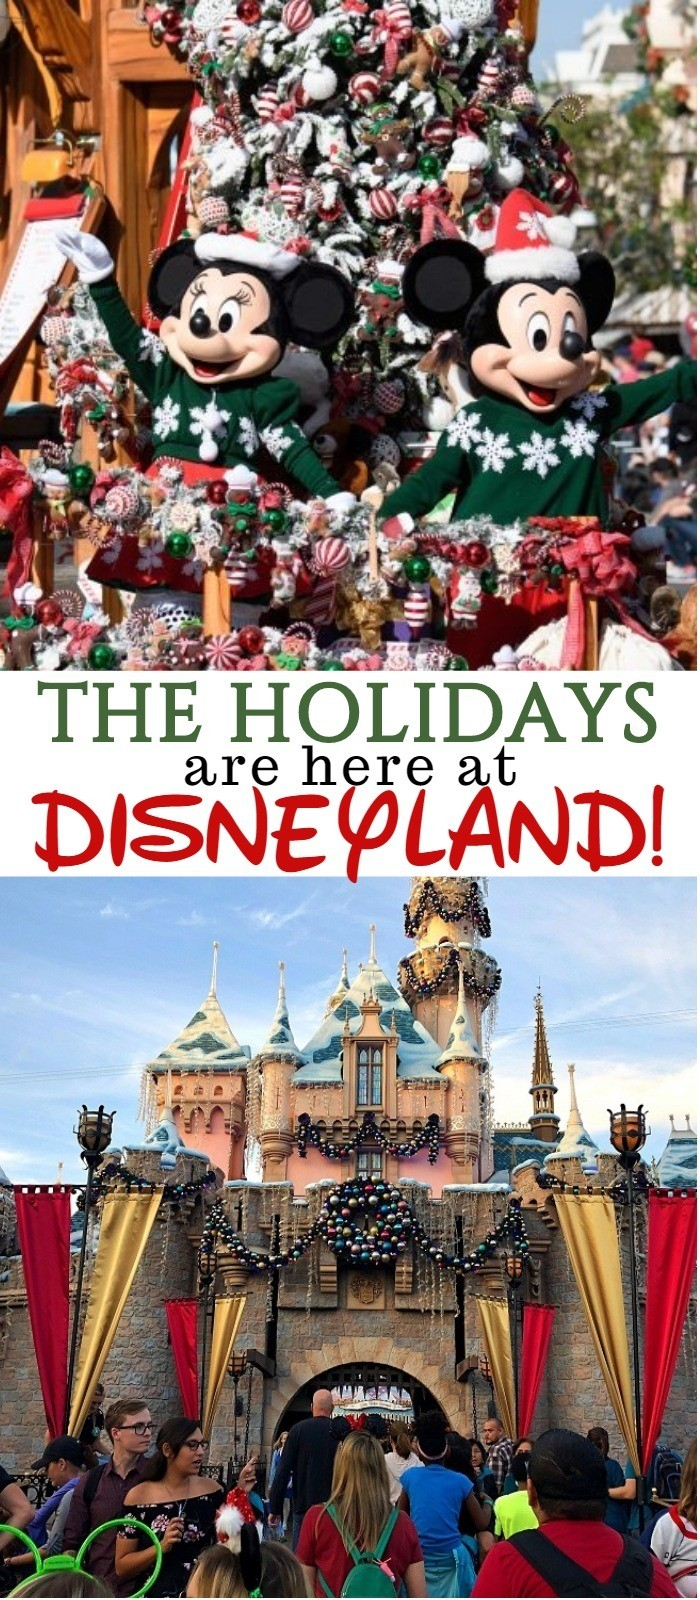 christmas time at disneyland experience the magic of disneyland holidays - Disneyland Christmas Time